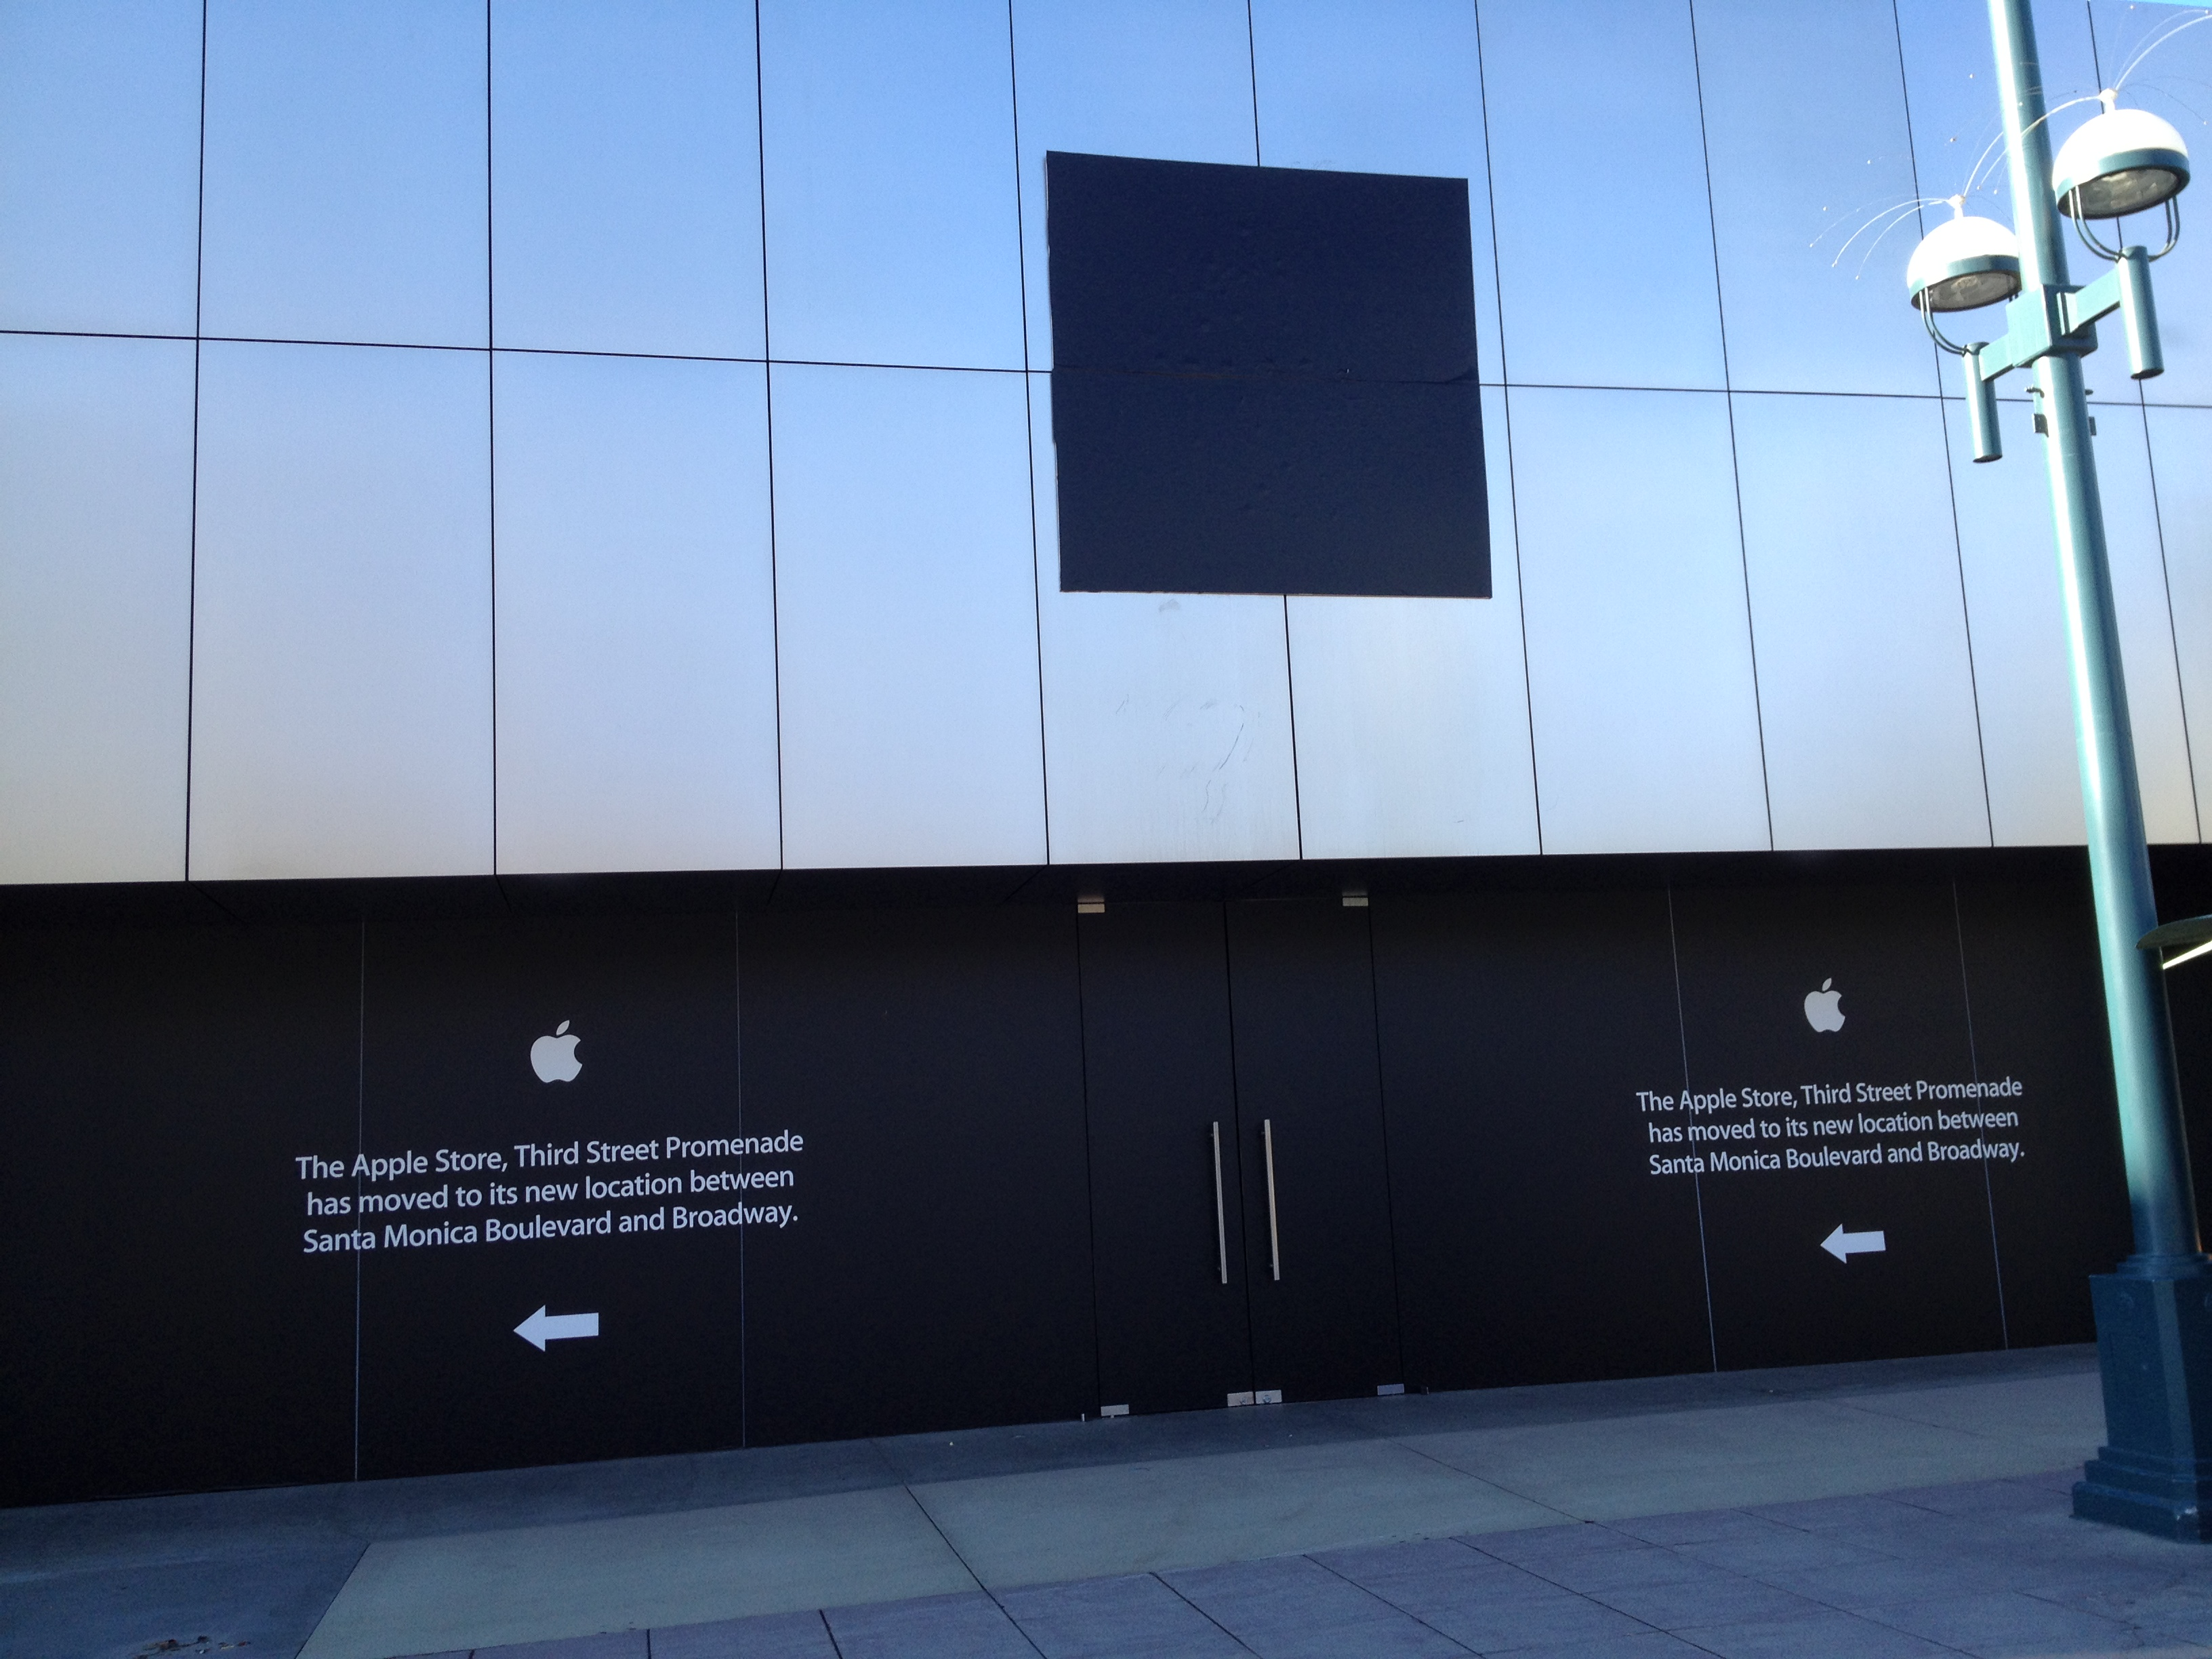 Apple store close by - Skin deep med spa